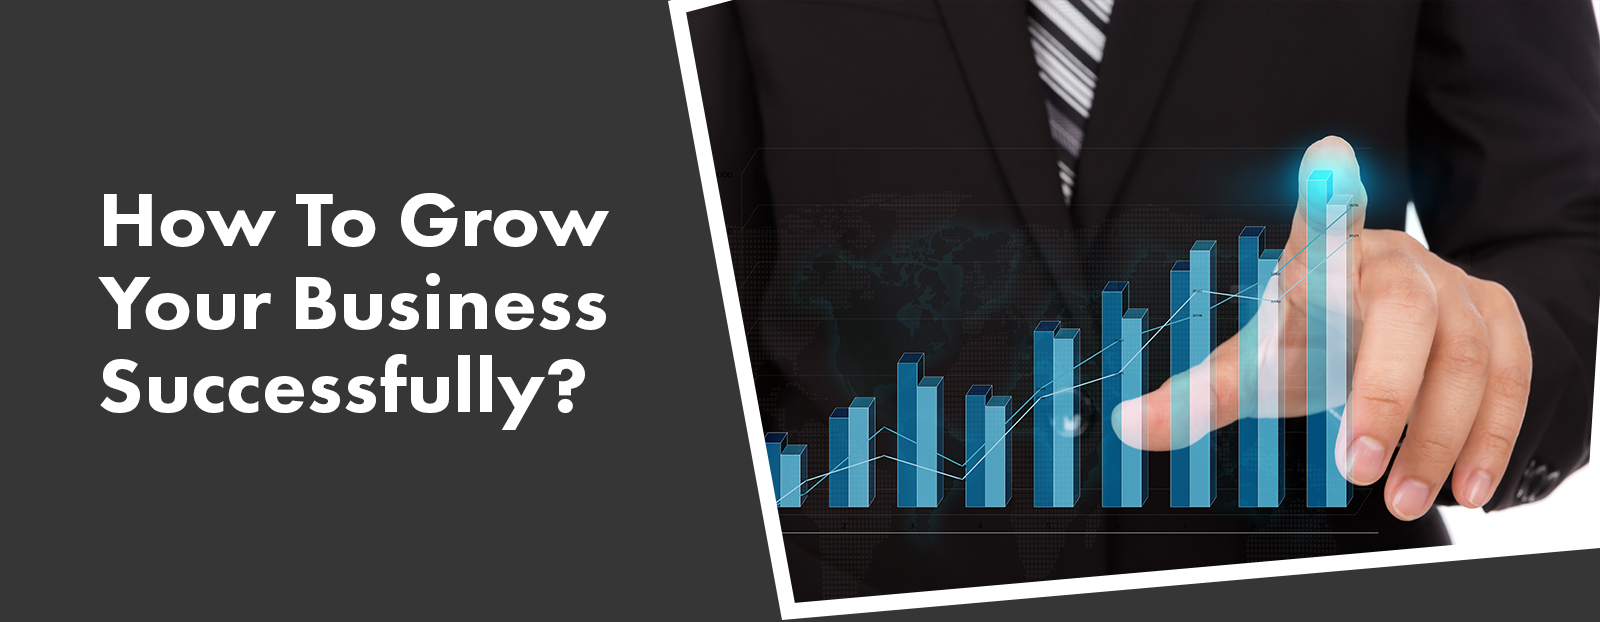 How To Grow Your Business Successfully?